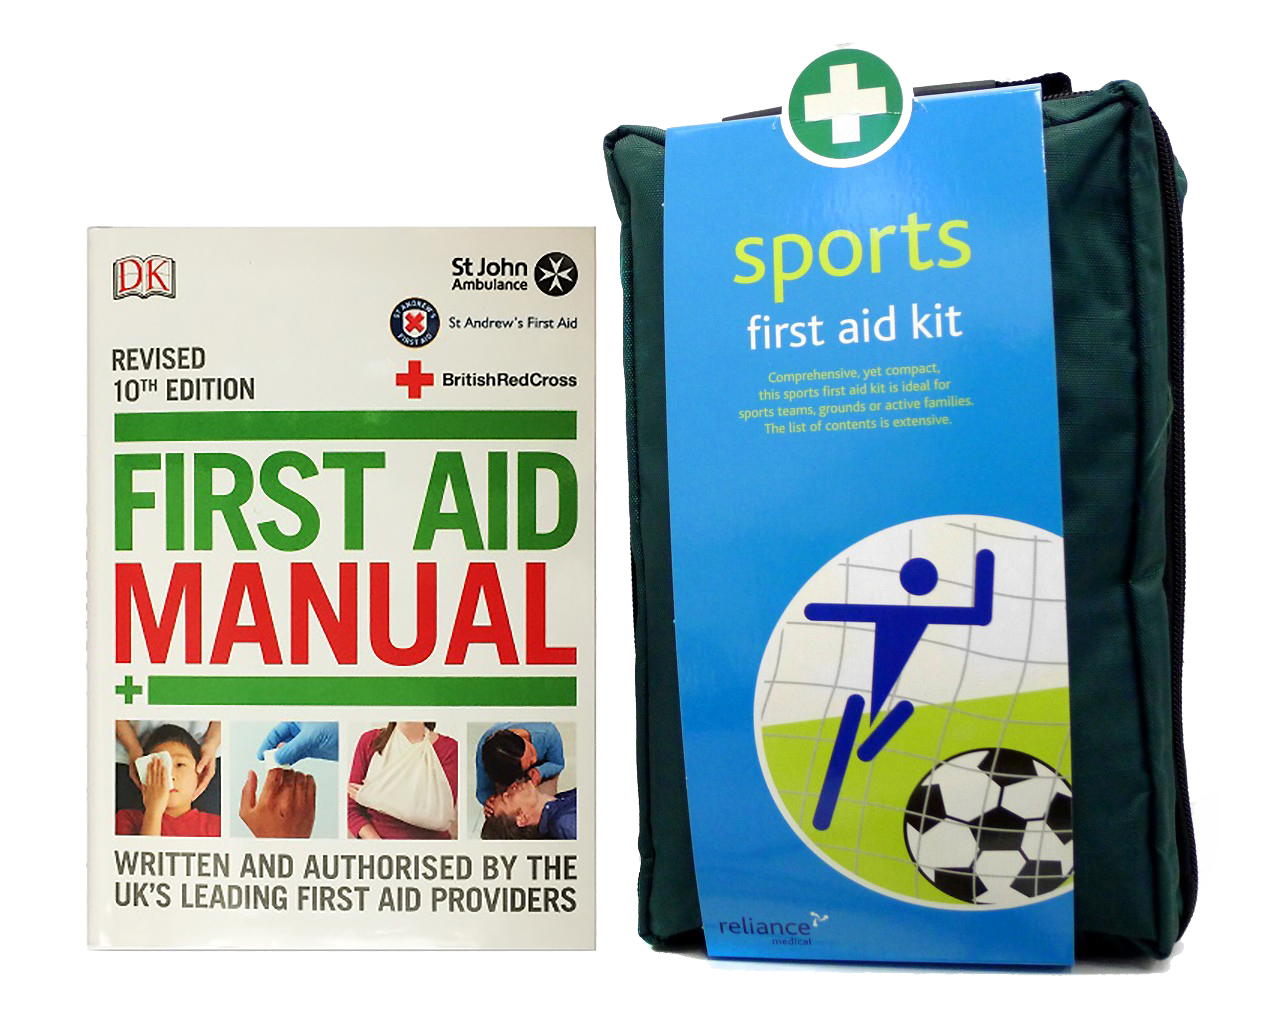 first aid manual The survival emergency solutions award winning first aid emergency handbook is now an e-handbook and for a short time is free to you - usually $995 usd it achieves the functionality of the $1895 usd paper version, which has sold over 16m copies.